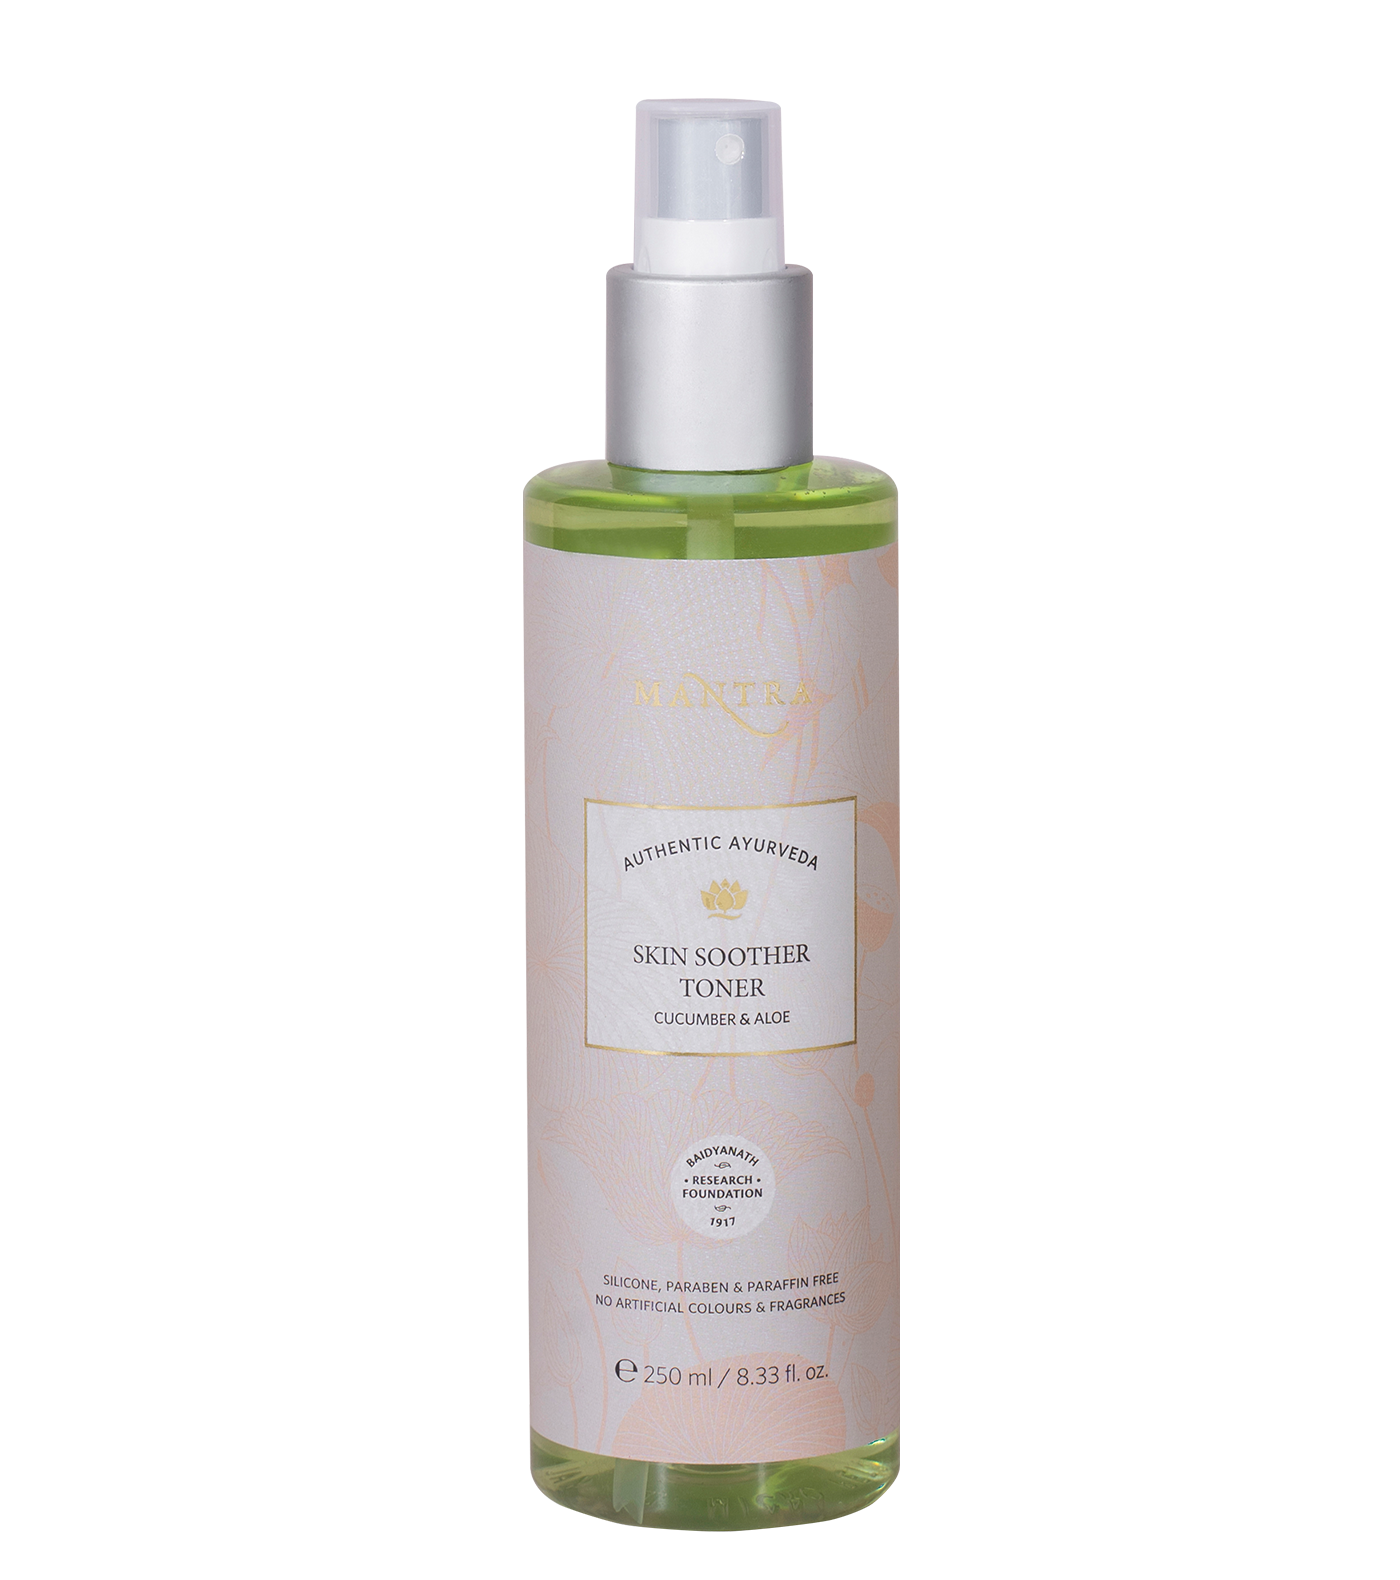 Skin Soother Toner   Cucumber & Aloe